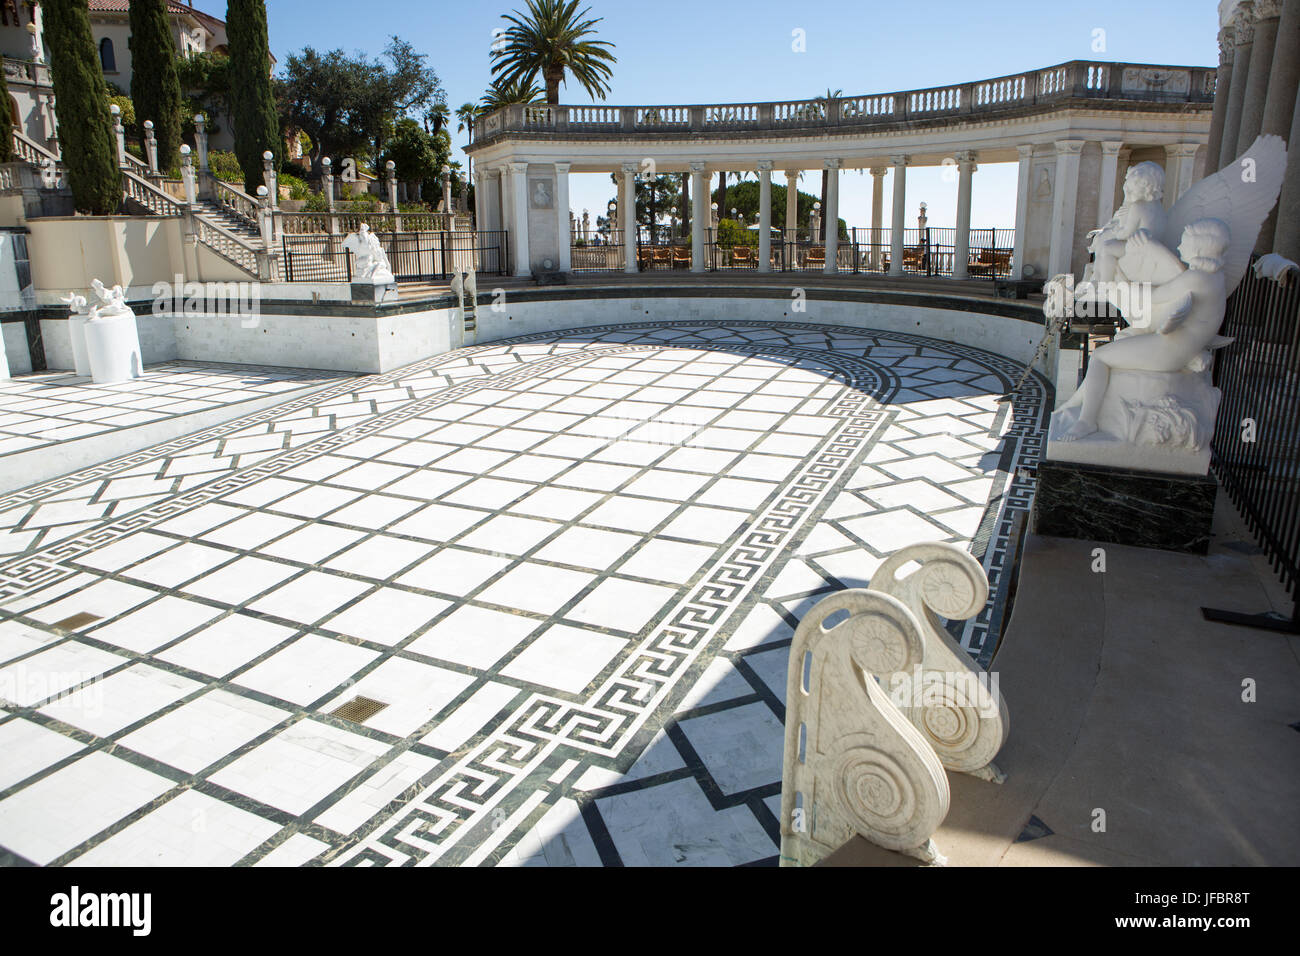 The Neptune Pool at Hearst Castle, empty for restoration, is surrounded by a sitting area and sculptures. - Stock Image